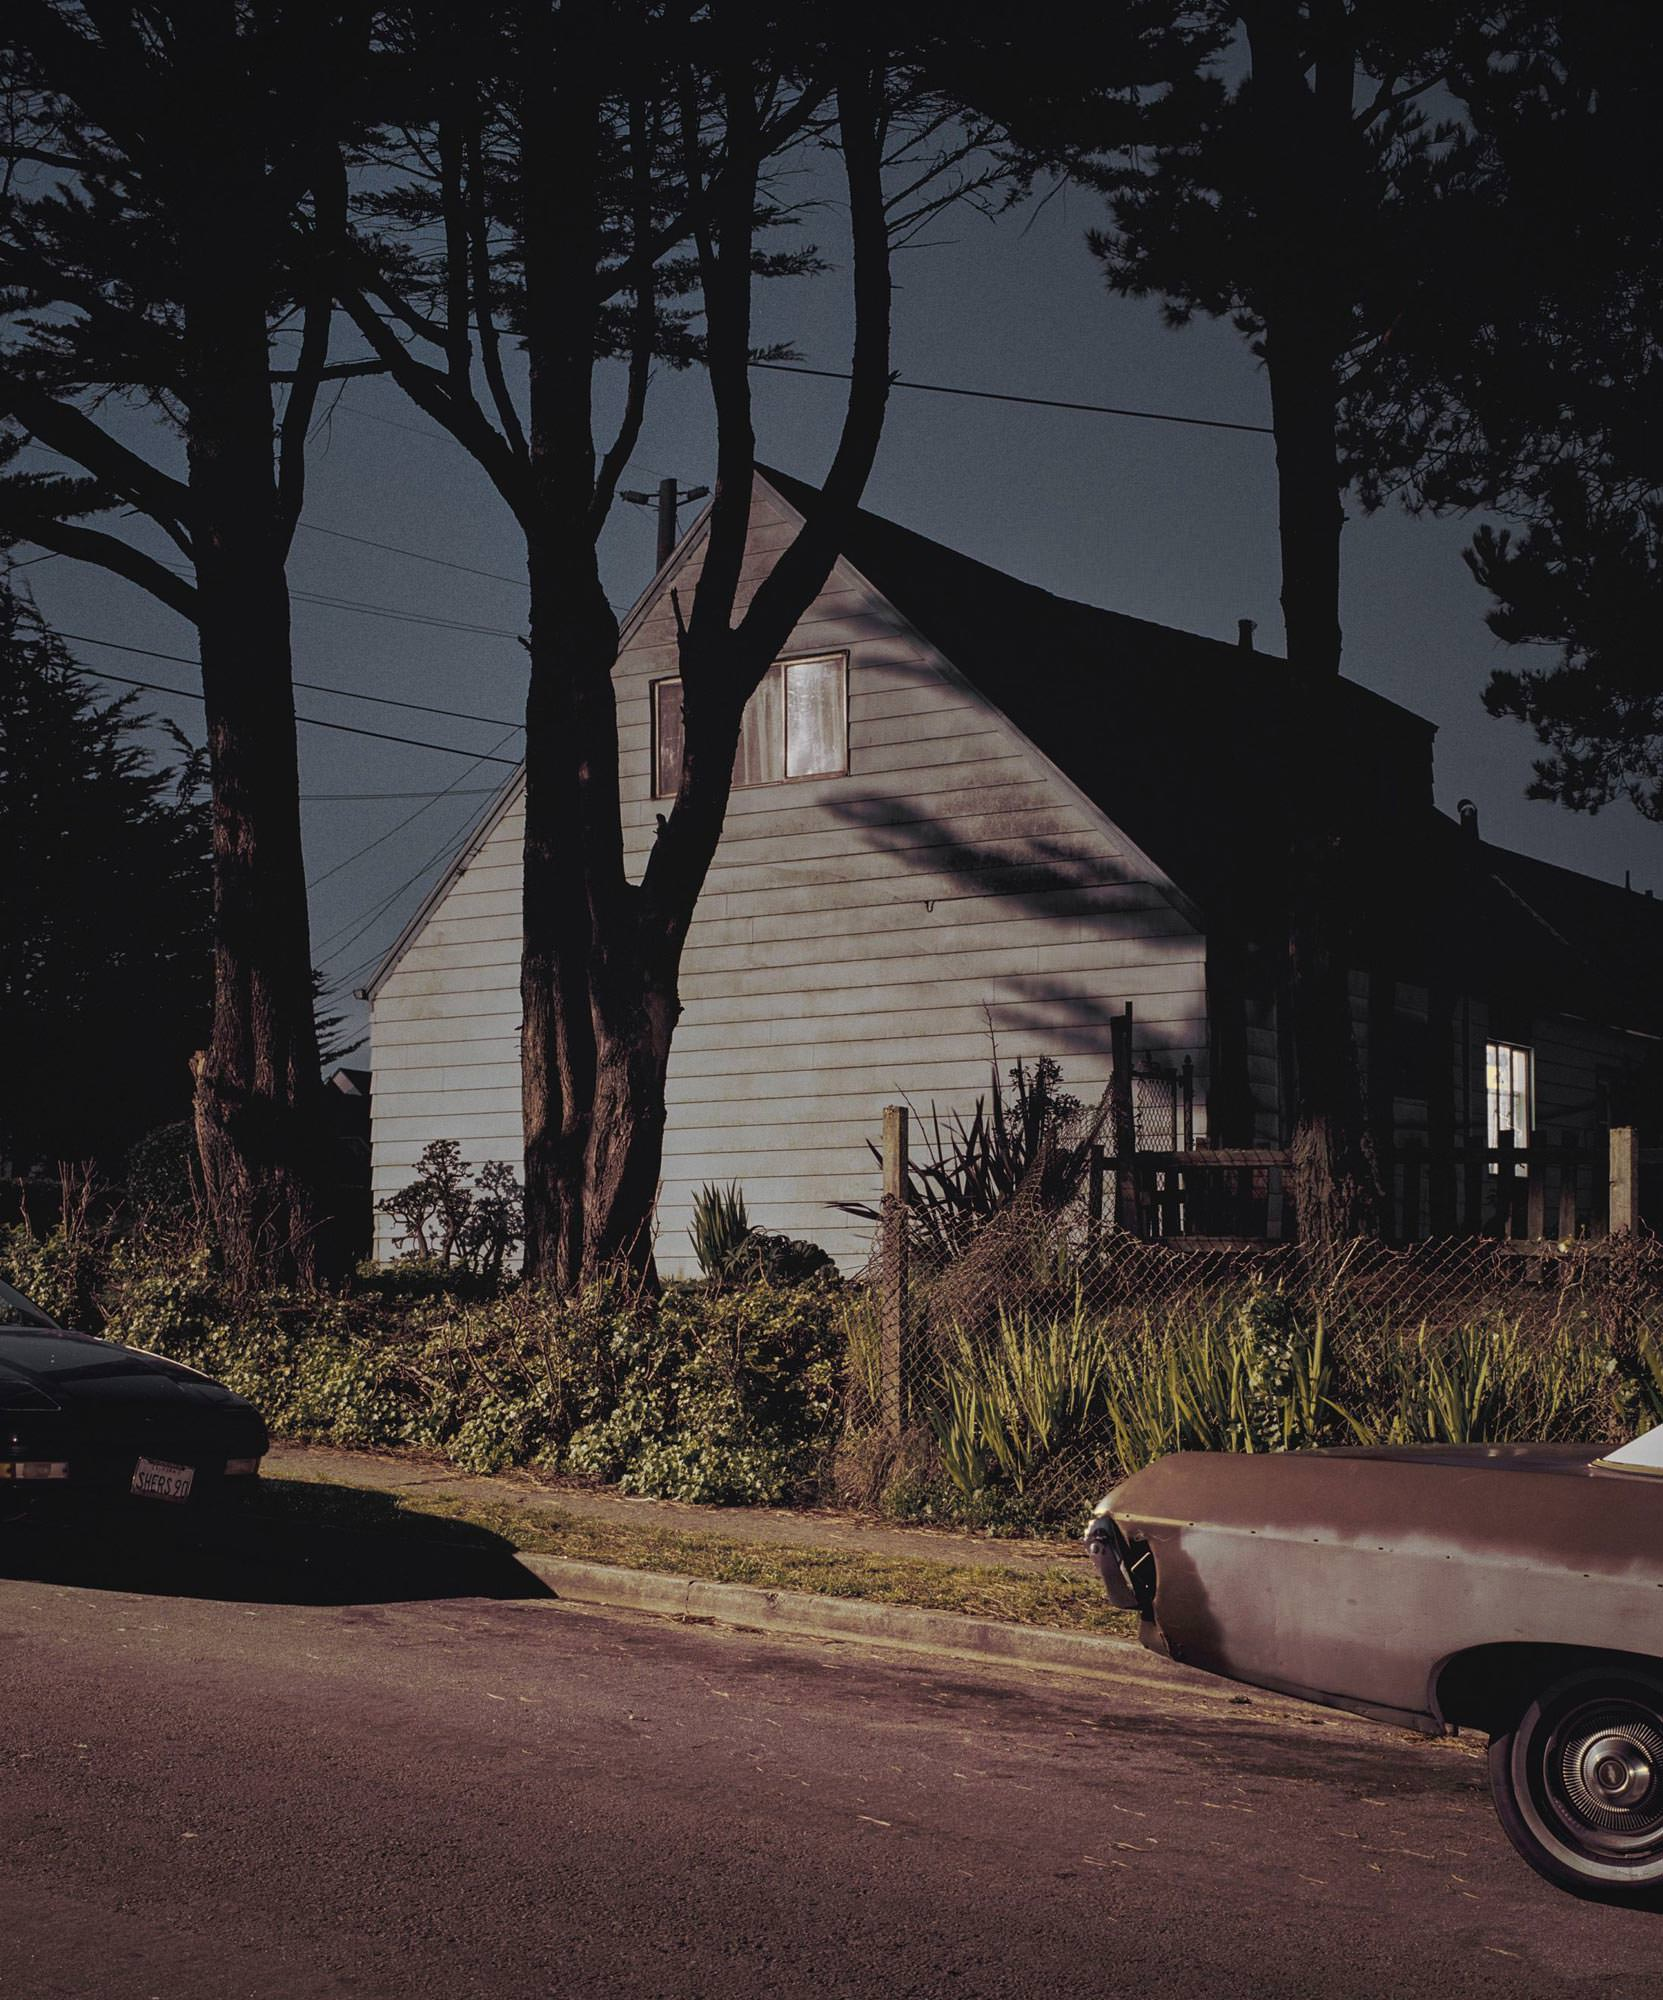 Todd Hido Photographie #2154-A, 1998